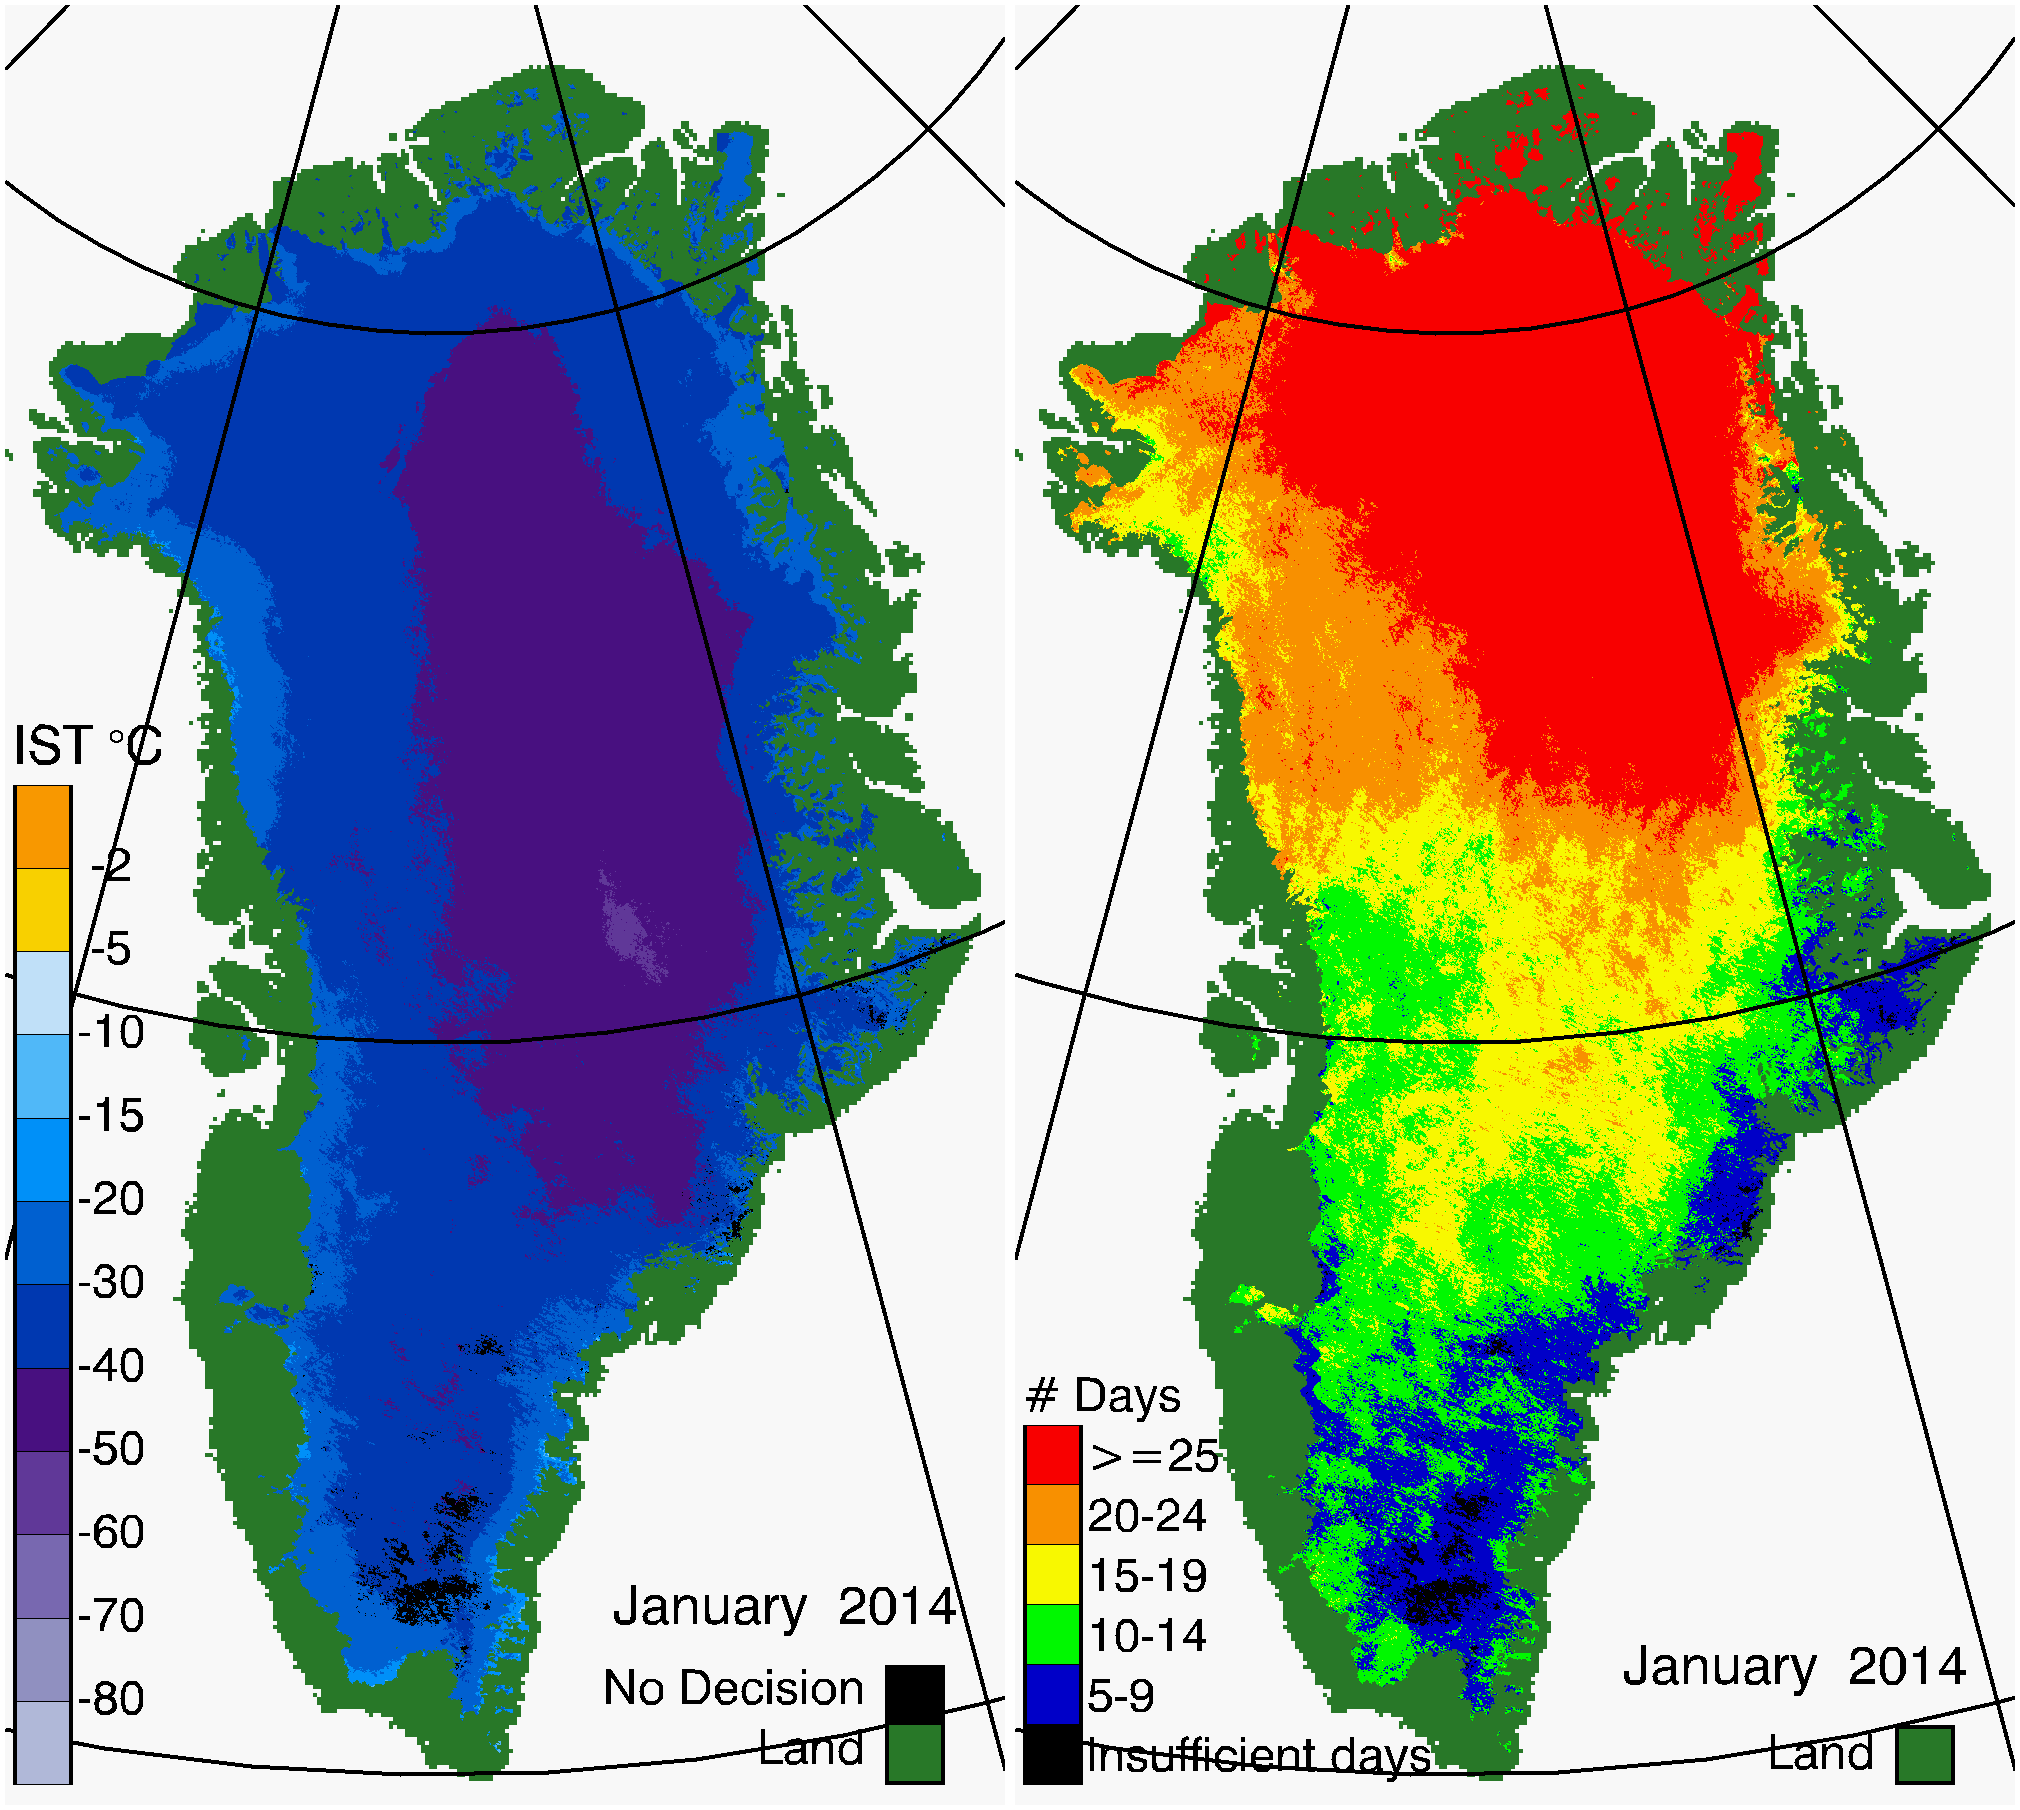 Greenland Surface Temp 01/2014